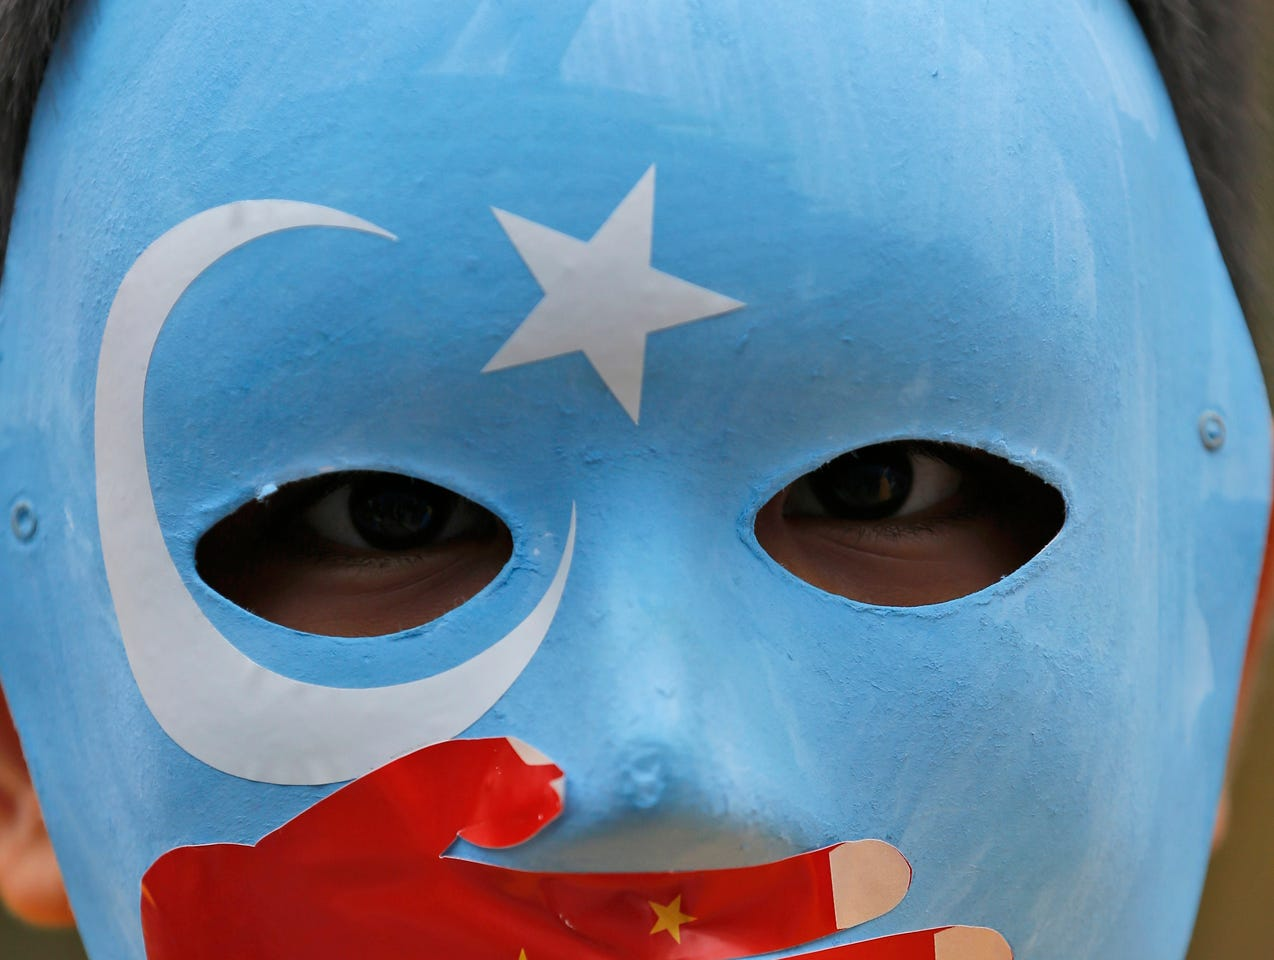 A child from the Uighur community living in Turkey wears a mask in the colours of the flag what ethnic Uighurs call 'East Turkestan', with a painted hand with the colours of China's flag, during a protest in Istanbul, Tuesday, Nov. 6, 2018, against what they allege is oppression by the Chinese government to Muslim Uighurs in the far-western Xinjiang province. (AP Photo/Lefteris Pitarakis)